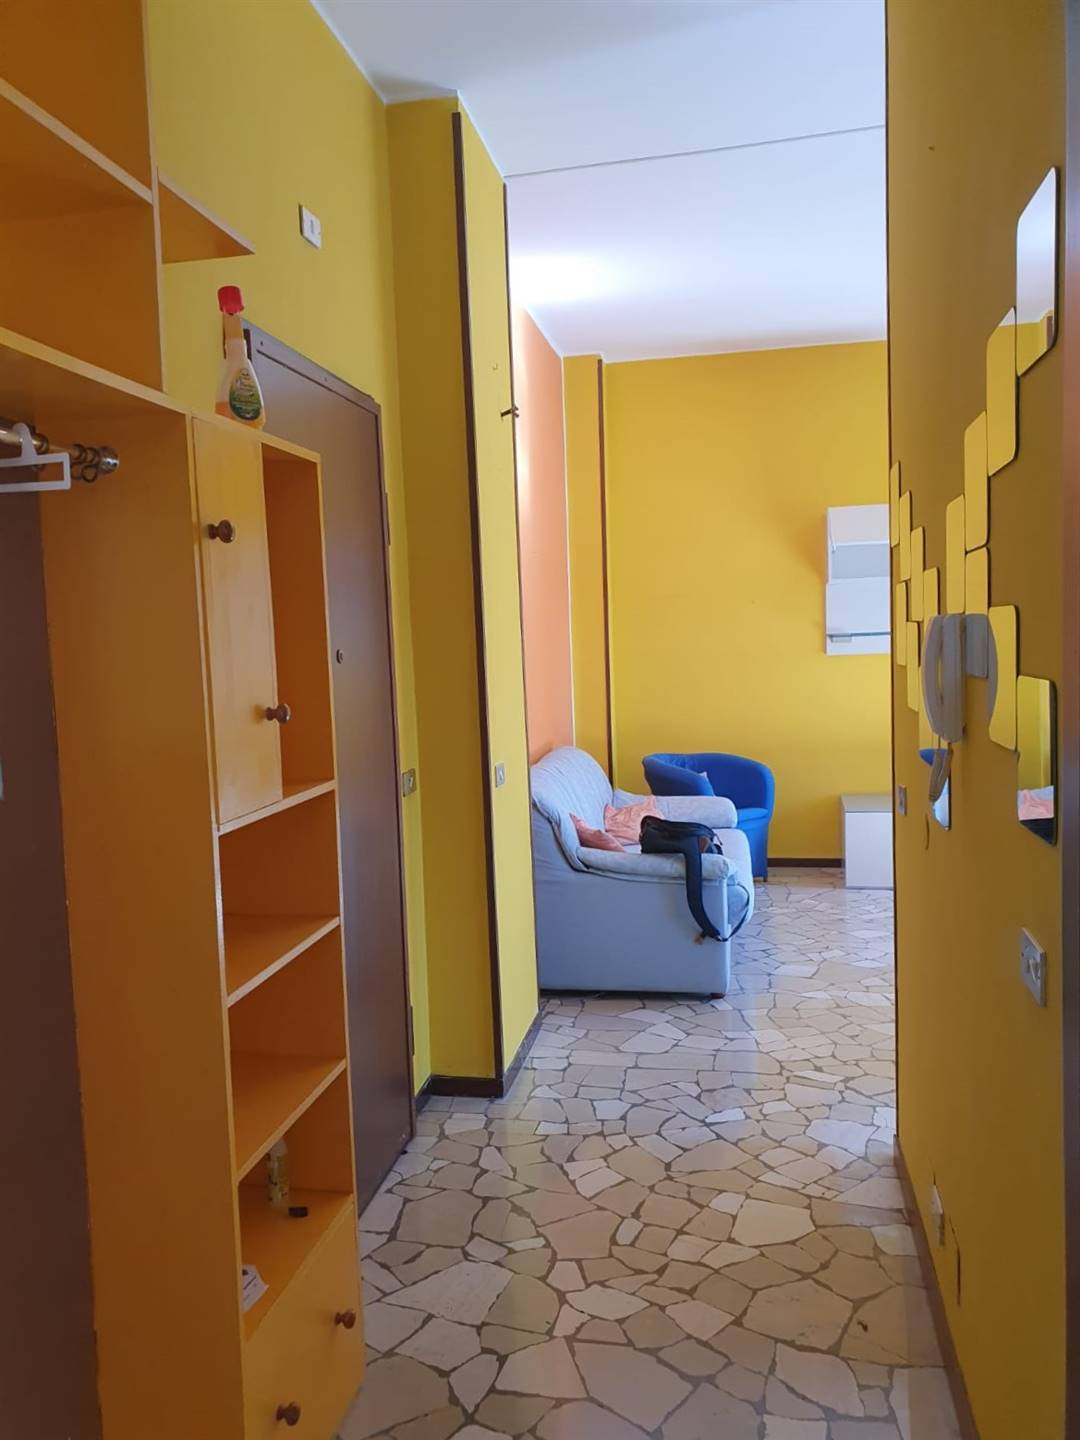 SESTO SAN GIOVANNI, Apartment for sale, Good condition, Heating Centralized, Energetic class: G, Epi: 175 kwh/m2 year, placed at Raised on 6,